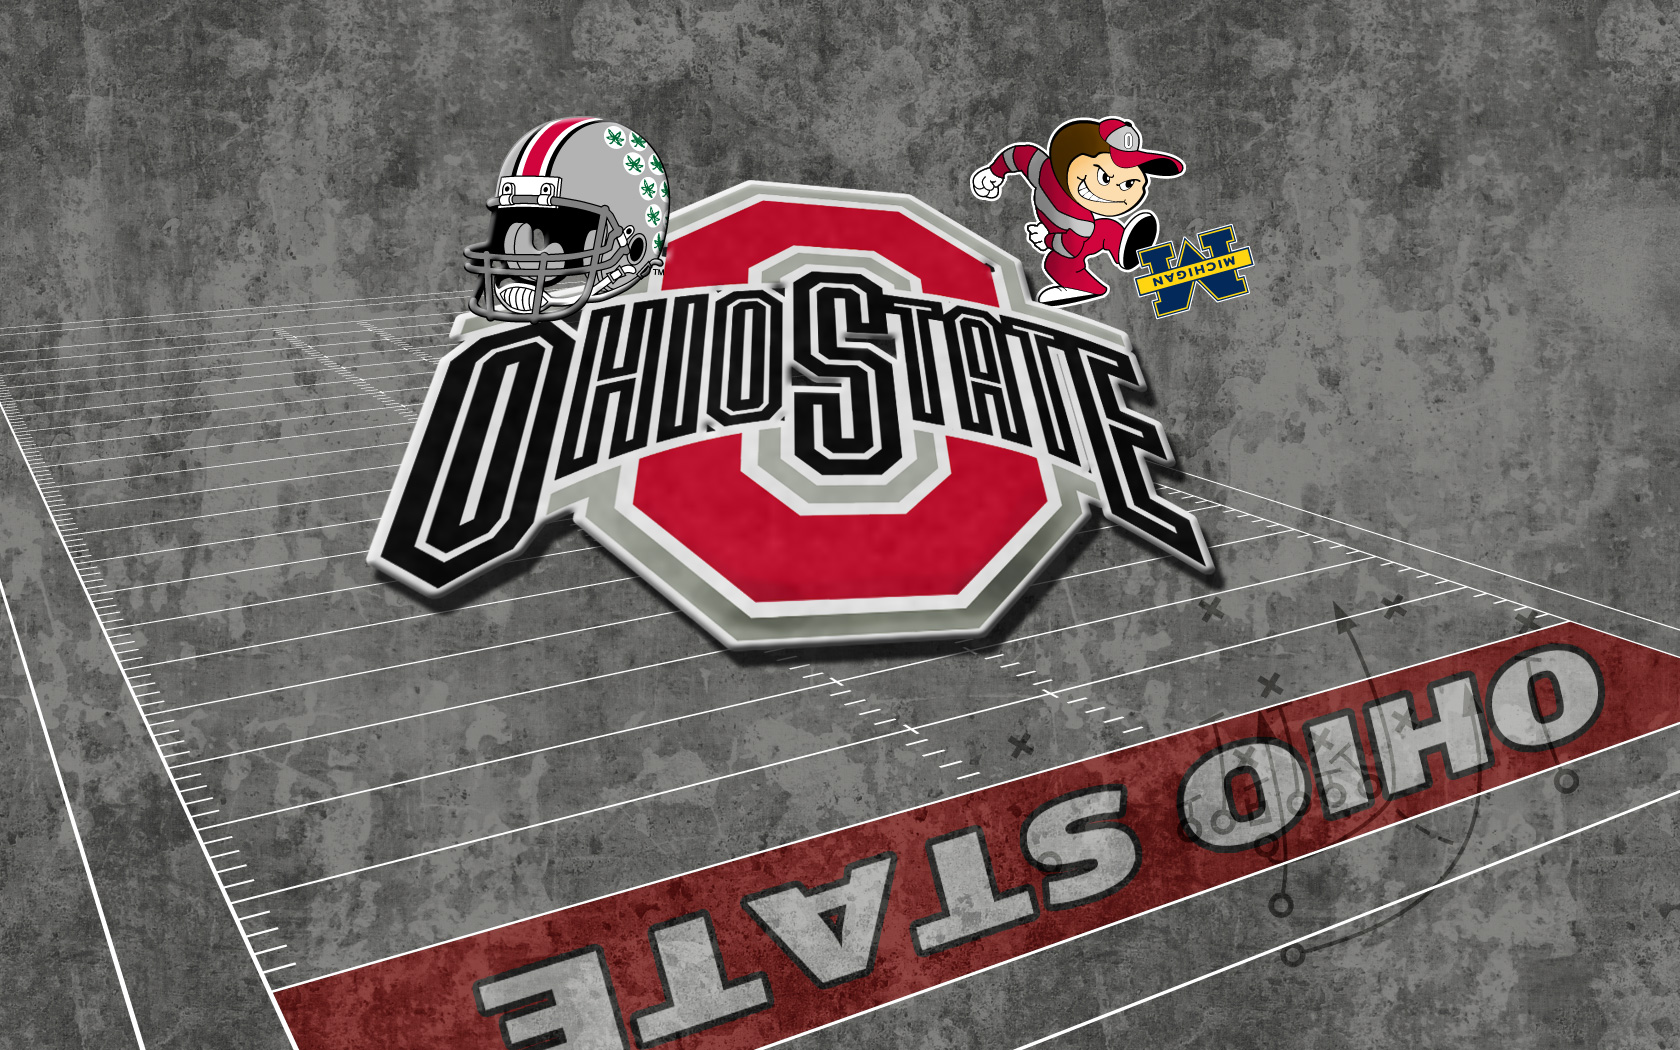 Ohio State Buckeyes Wallpapers Wallpaper 1680x1050